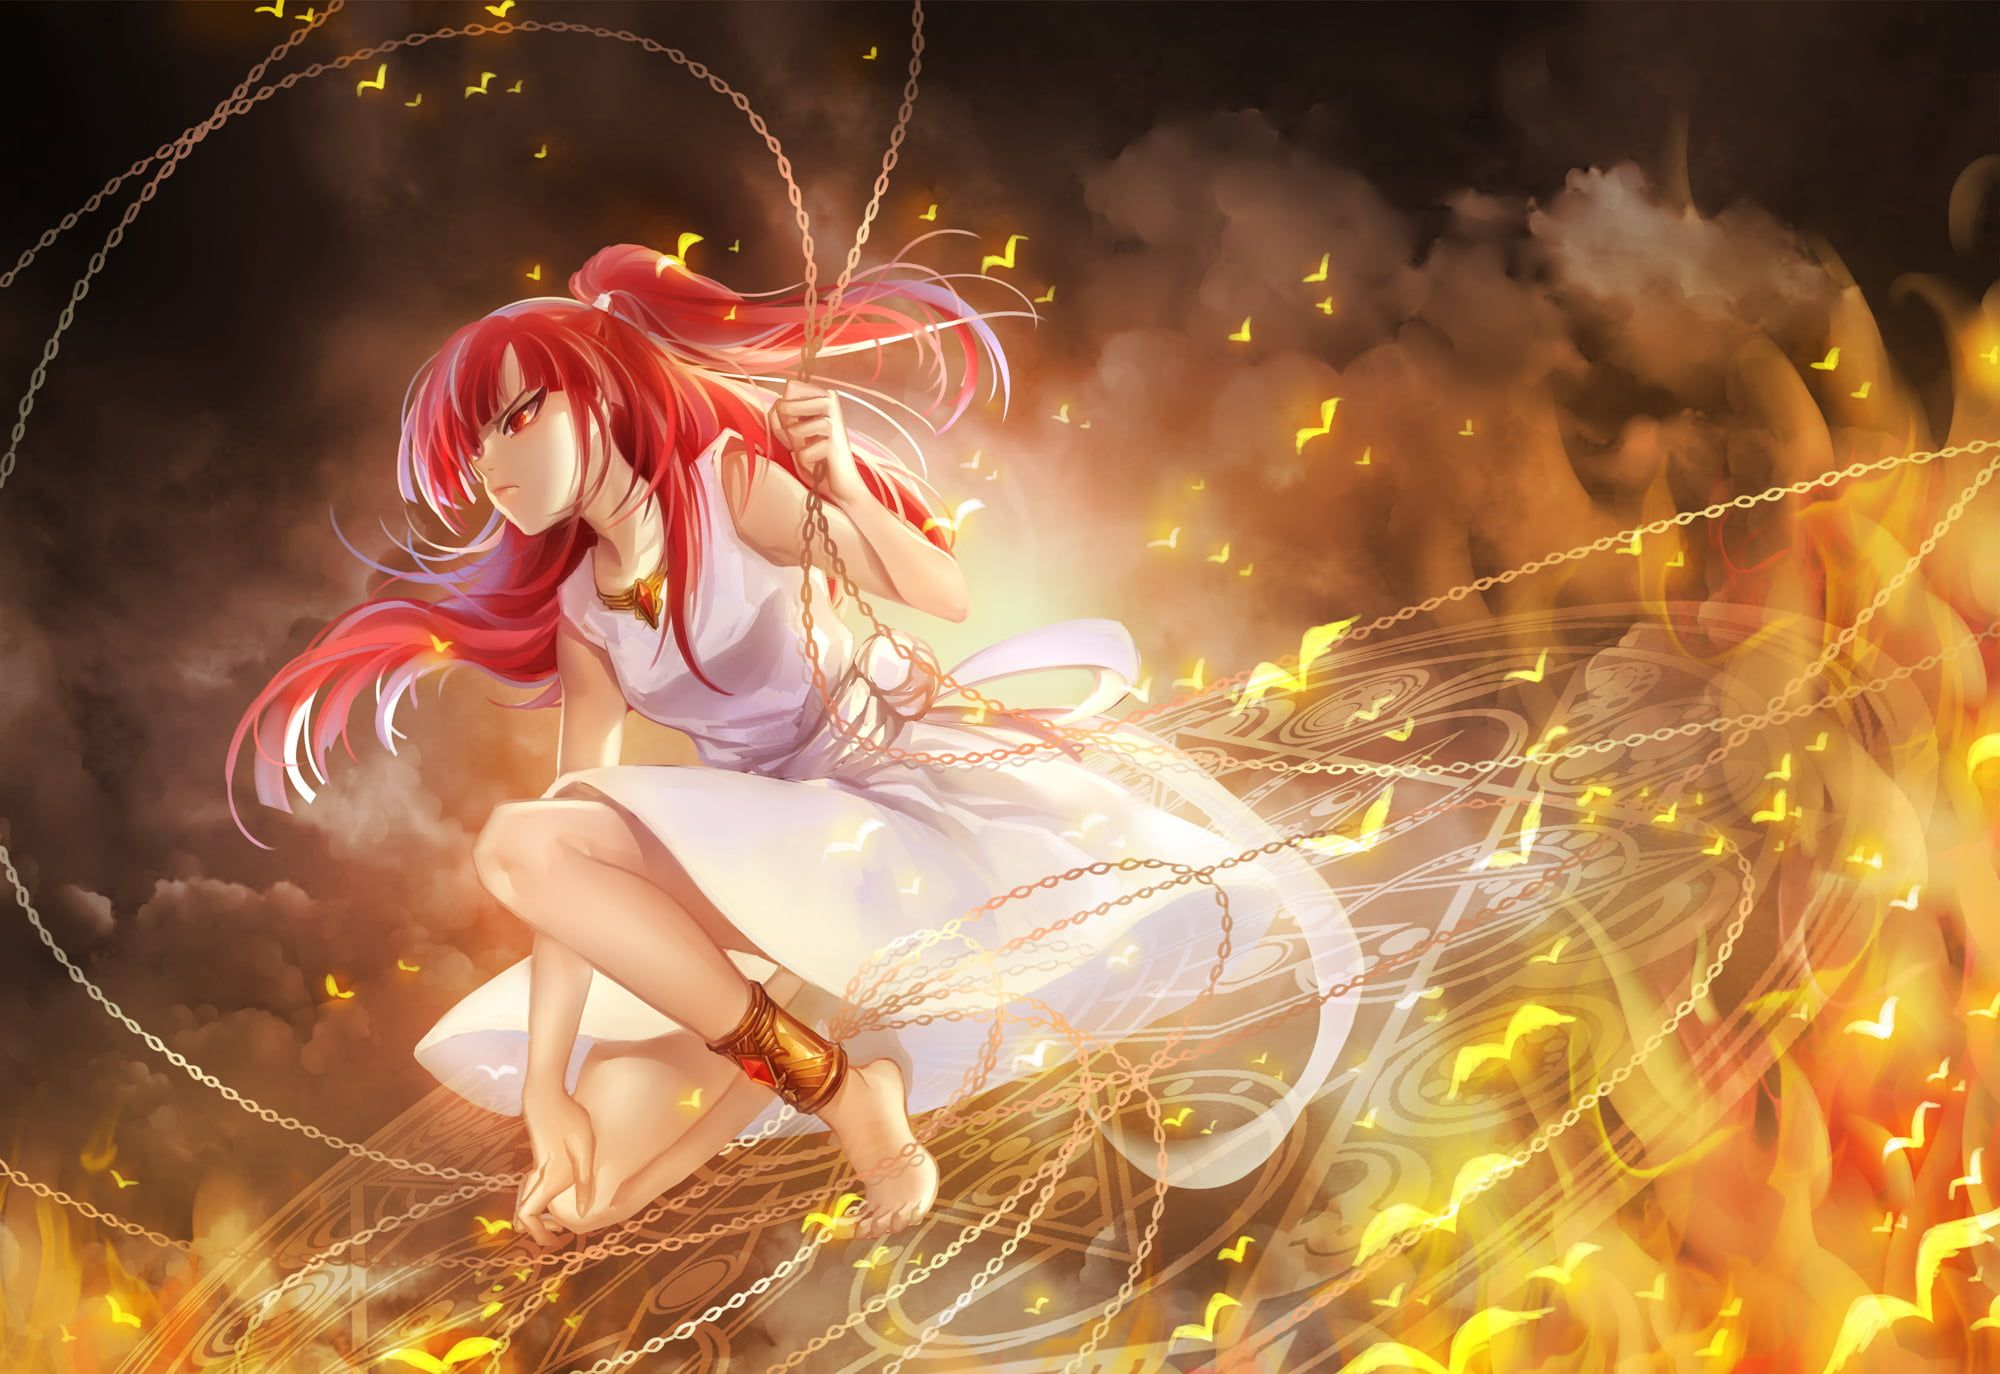 Red Haired Female Character Wallpaper Magi The Labyrinth Of Magic Morgiana Girl Anime Dress Fire Birds 1080p Wallpa Anime Magi Magi Character Wallpaper